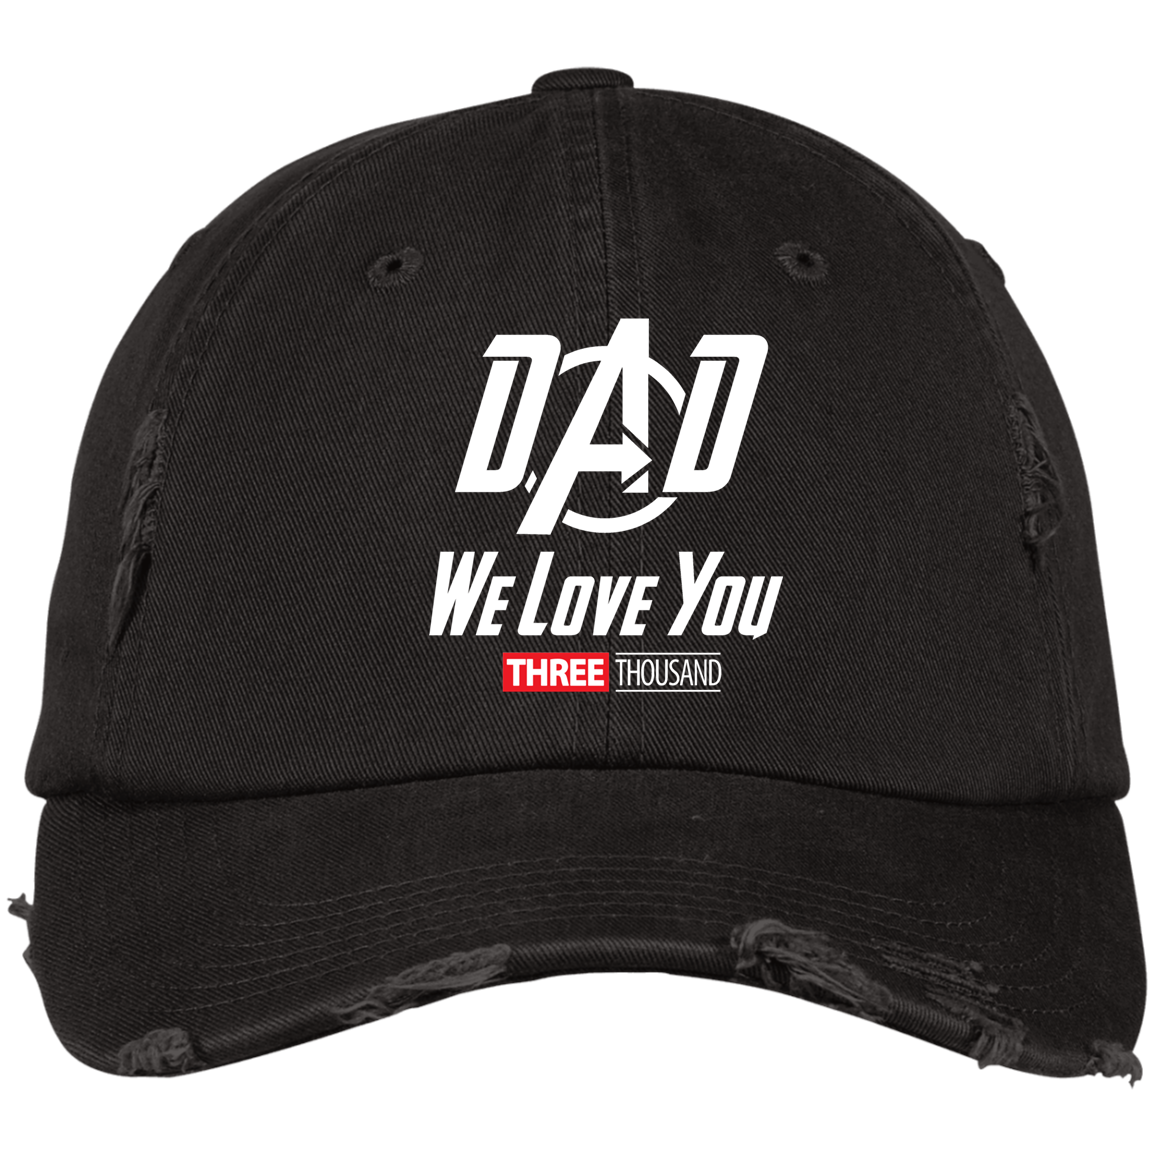 Dad We Love You Three Thousand - Embroidered Distressed Cap